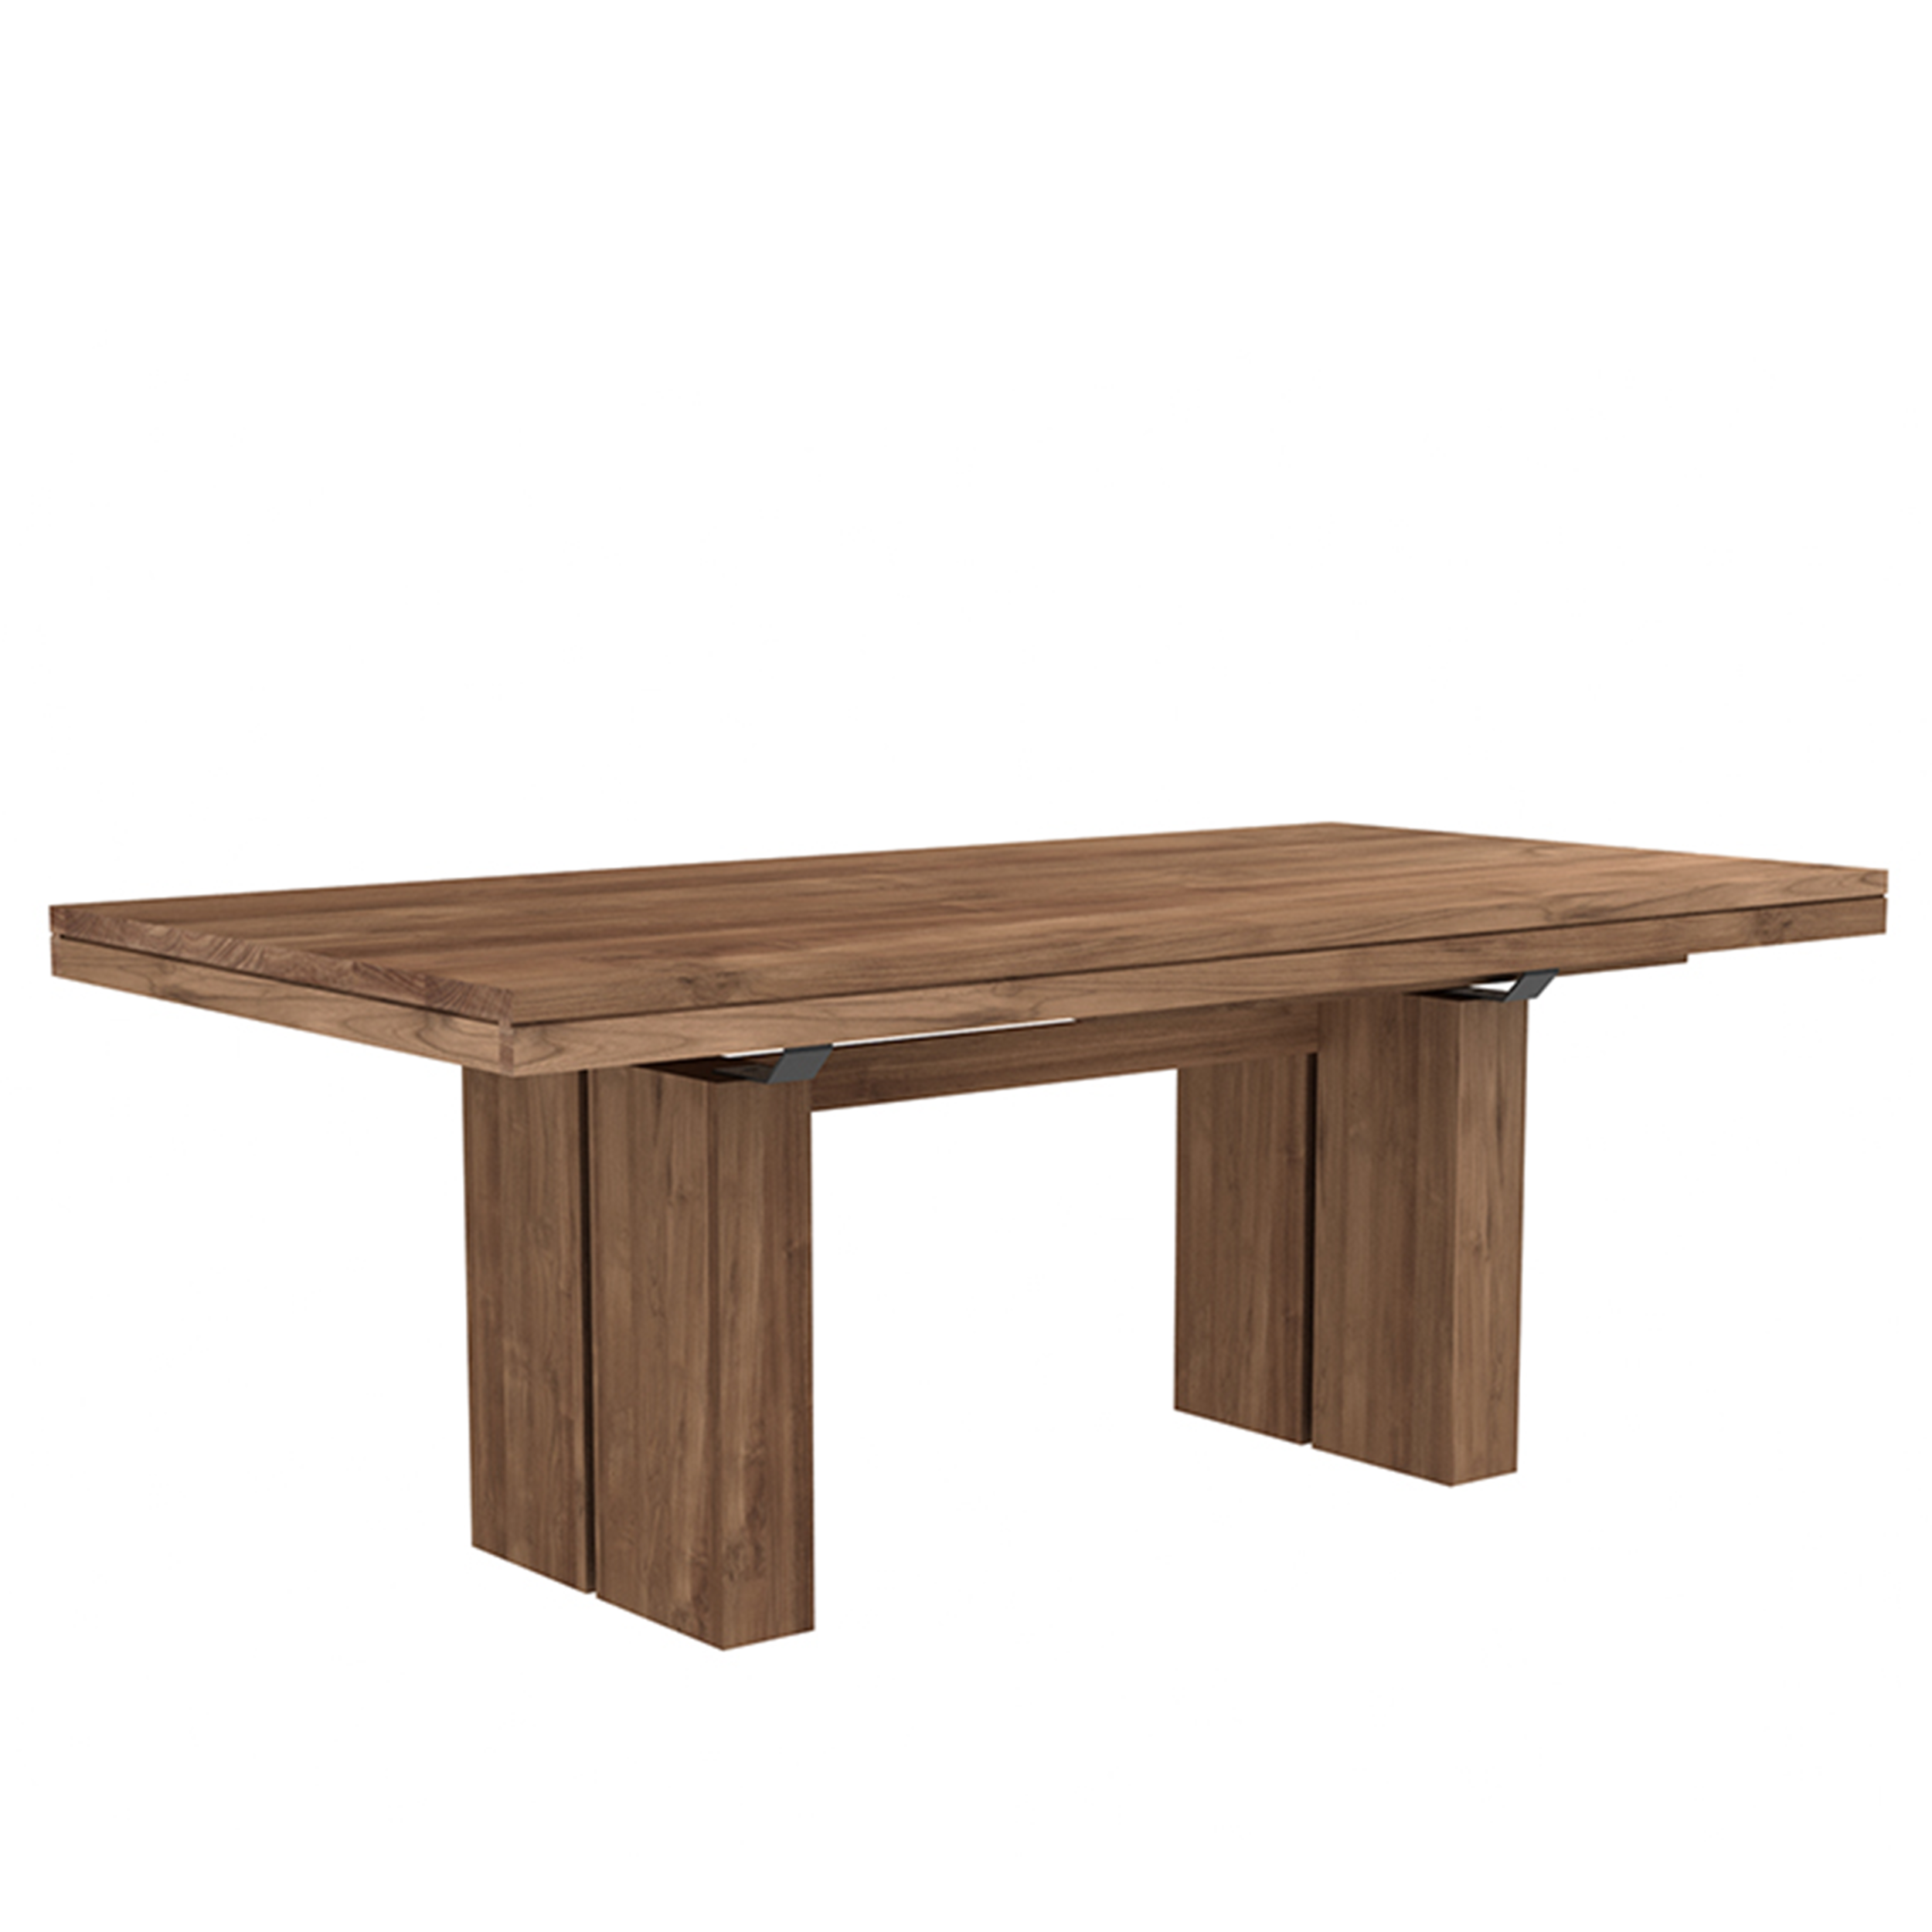 TGE-012066-Teak-Double-extendable-dining-table-200-300x100x76_p.jpg.png